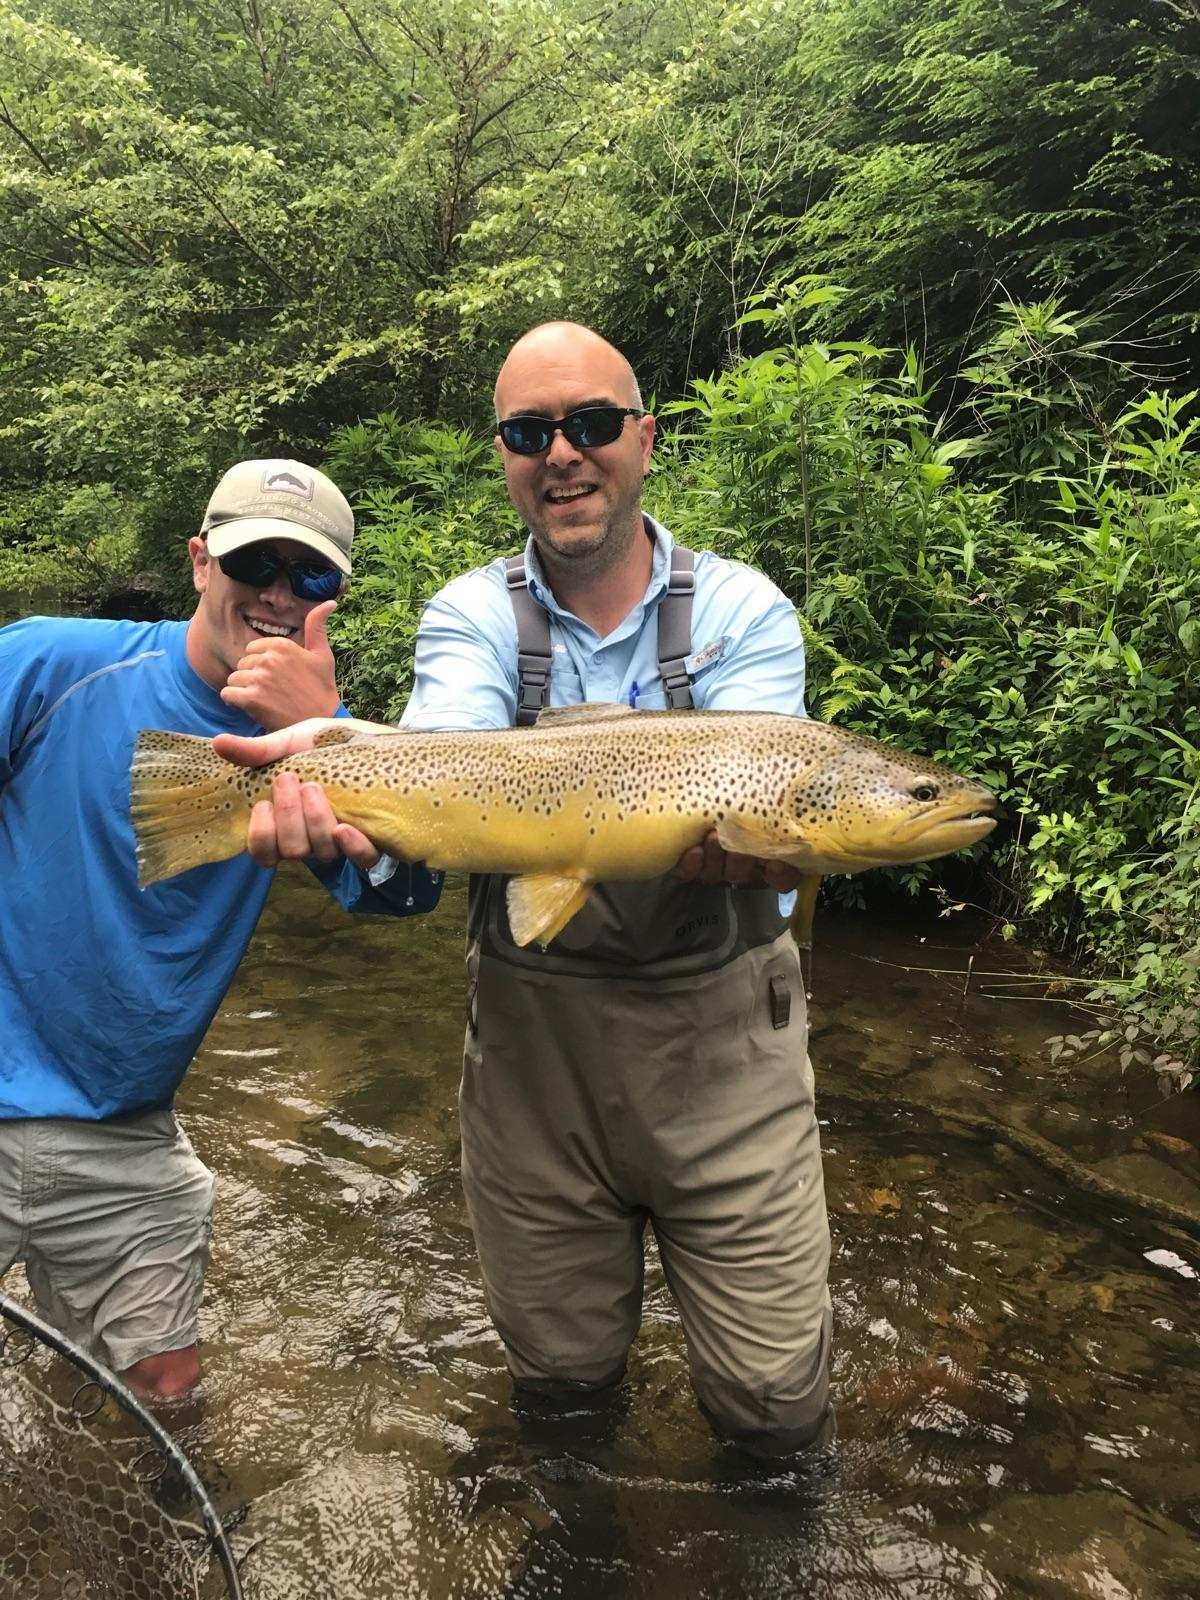 GUIDED TRIPS - Fly Fishing North Georgia